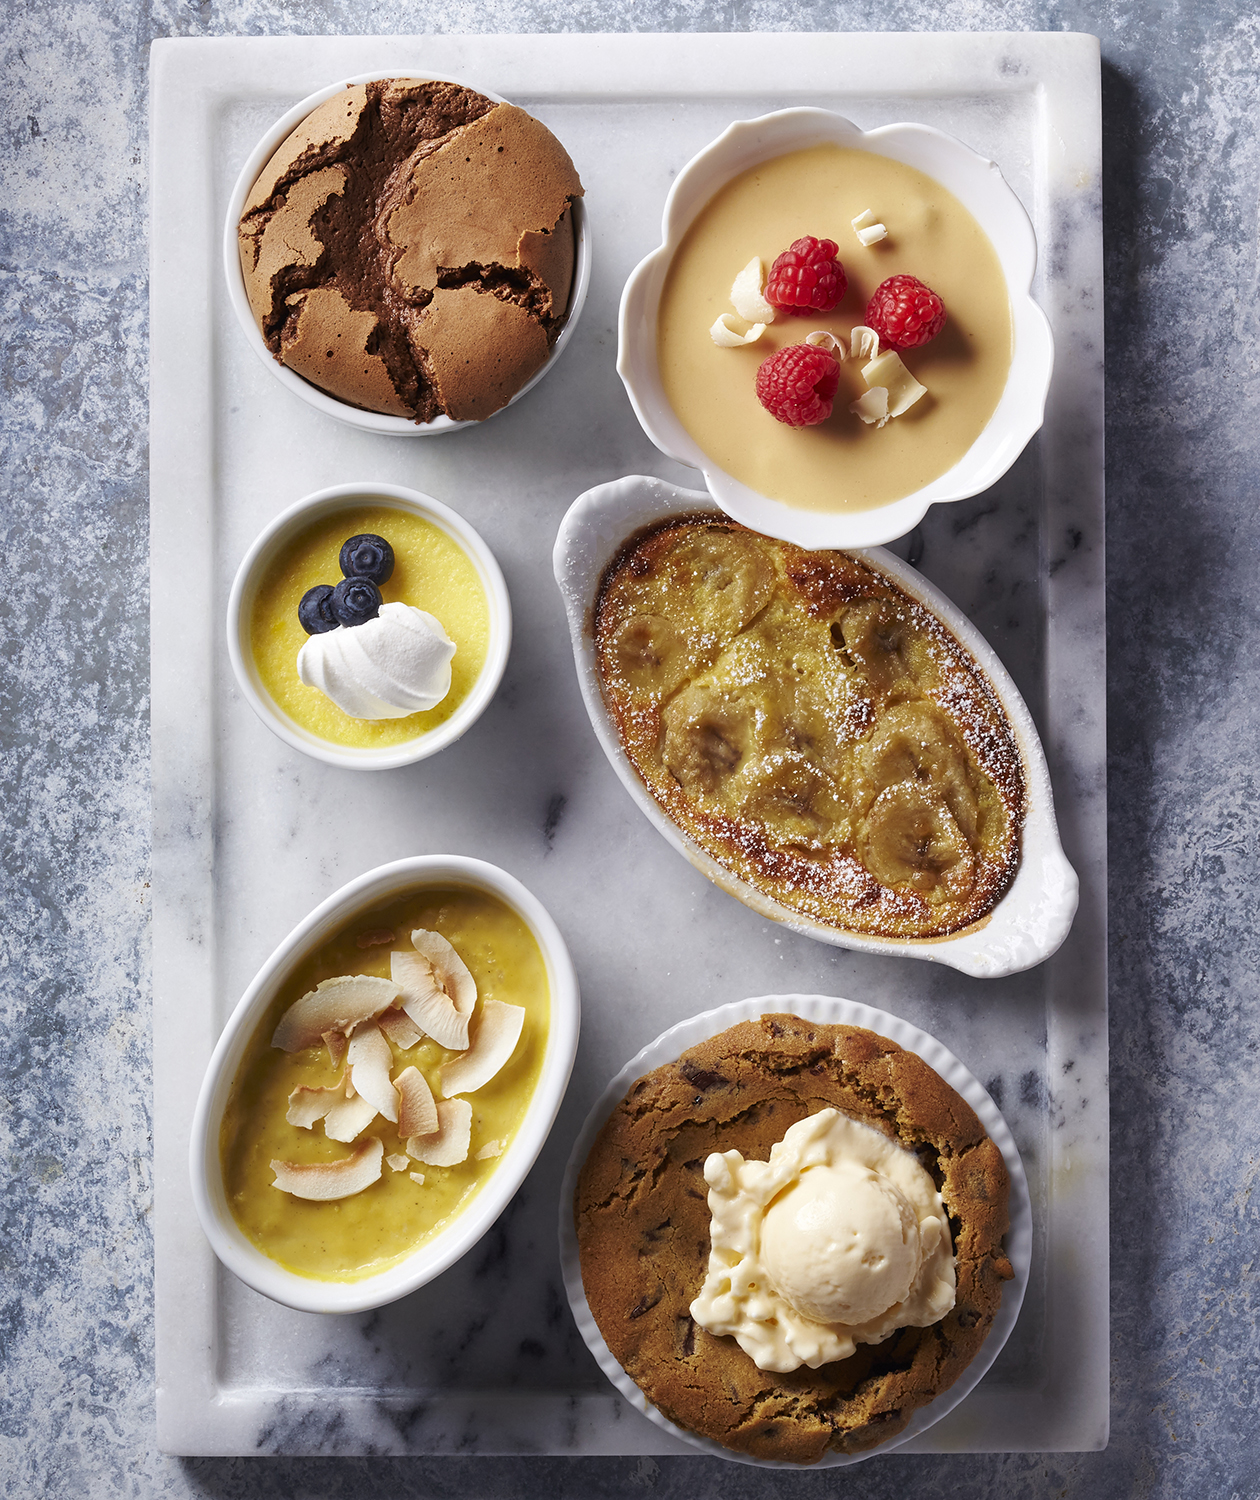 Ramekin Desserts group shot